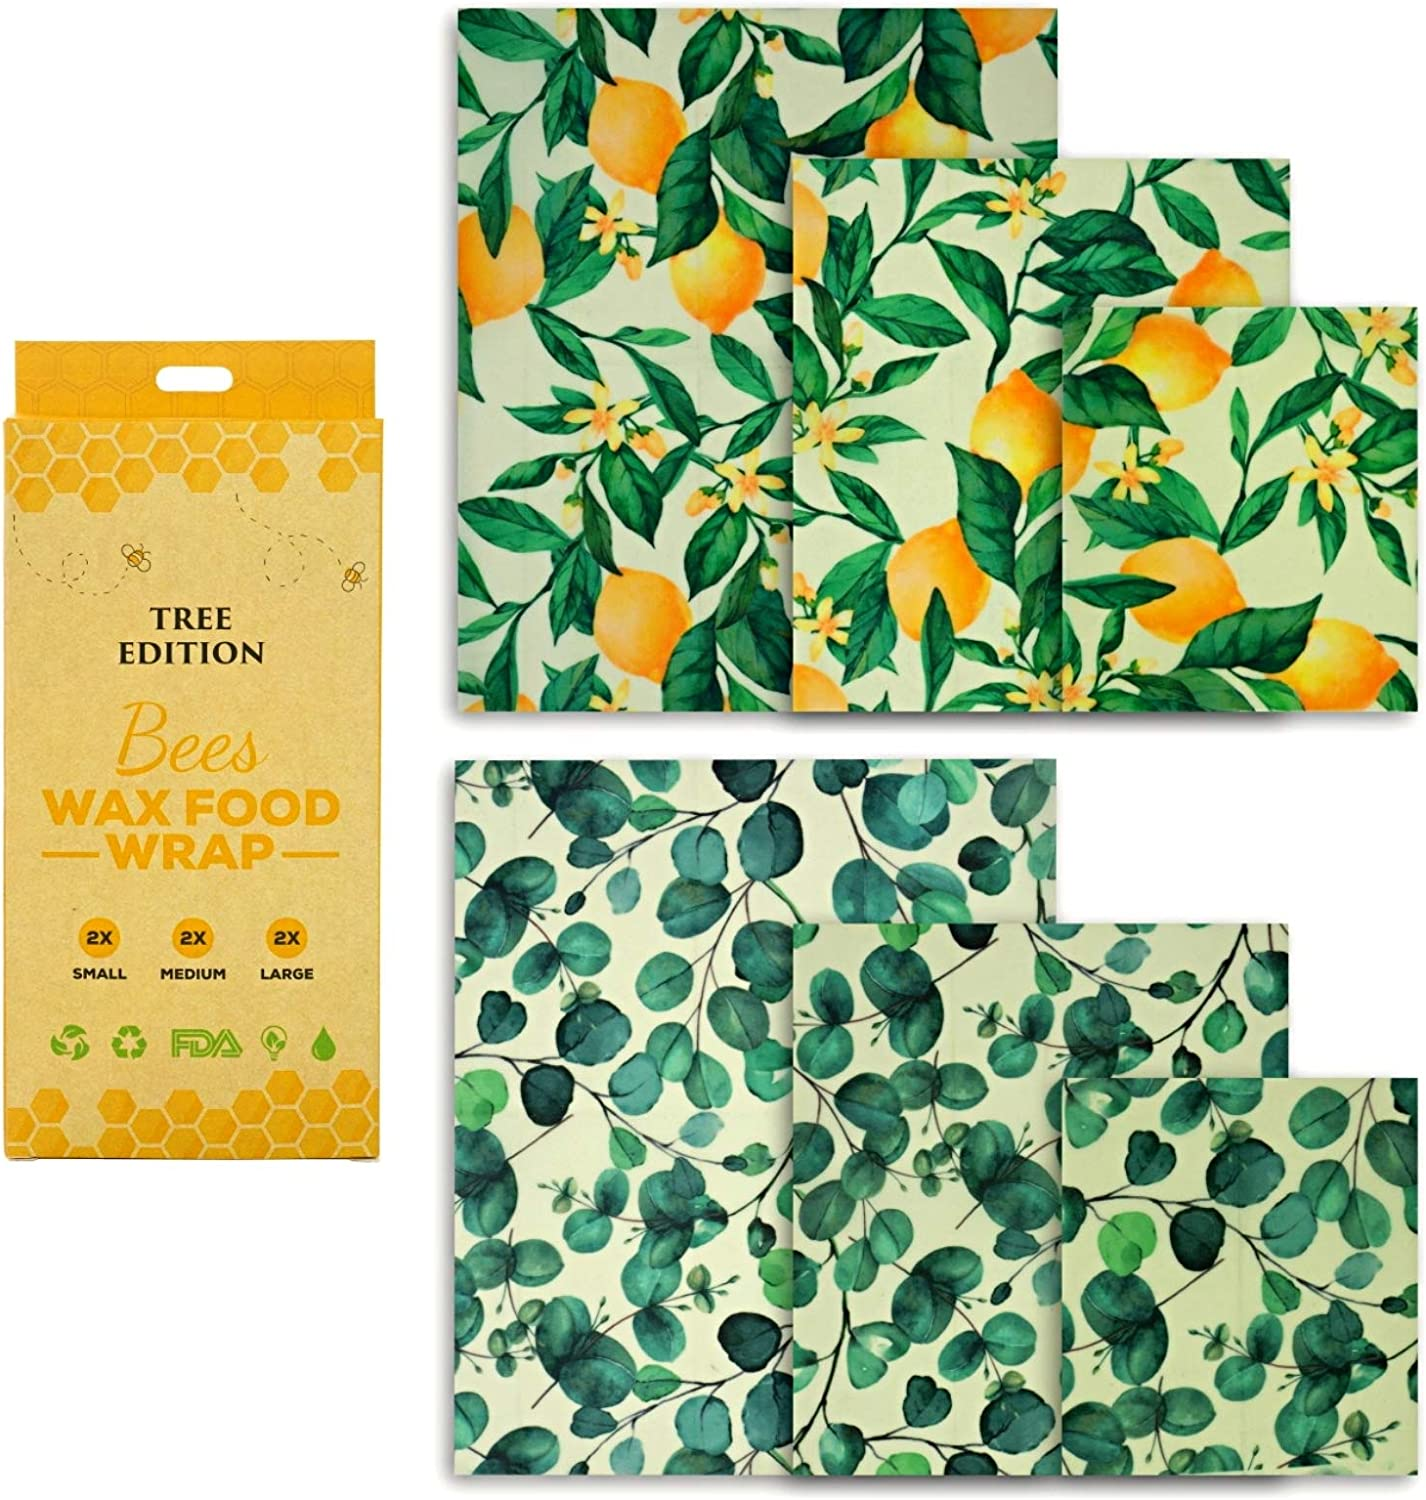 Beeswax Food Wraps, Pack of 6 Eucalyptus and Lemon Tree Printed Beeswax Wraps in 3 Sizes, All-Natural and Reusable Food Wraps, Sustainable, Fresh Design Beeswax Wrappings.